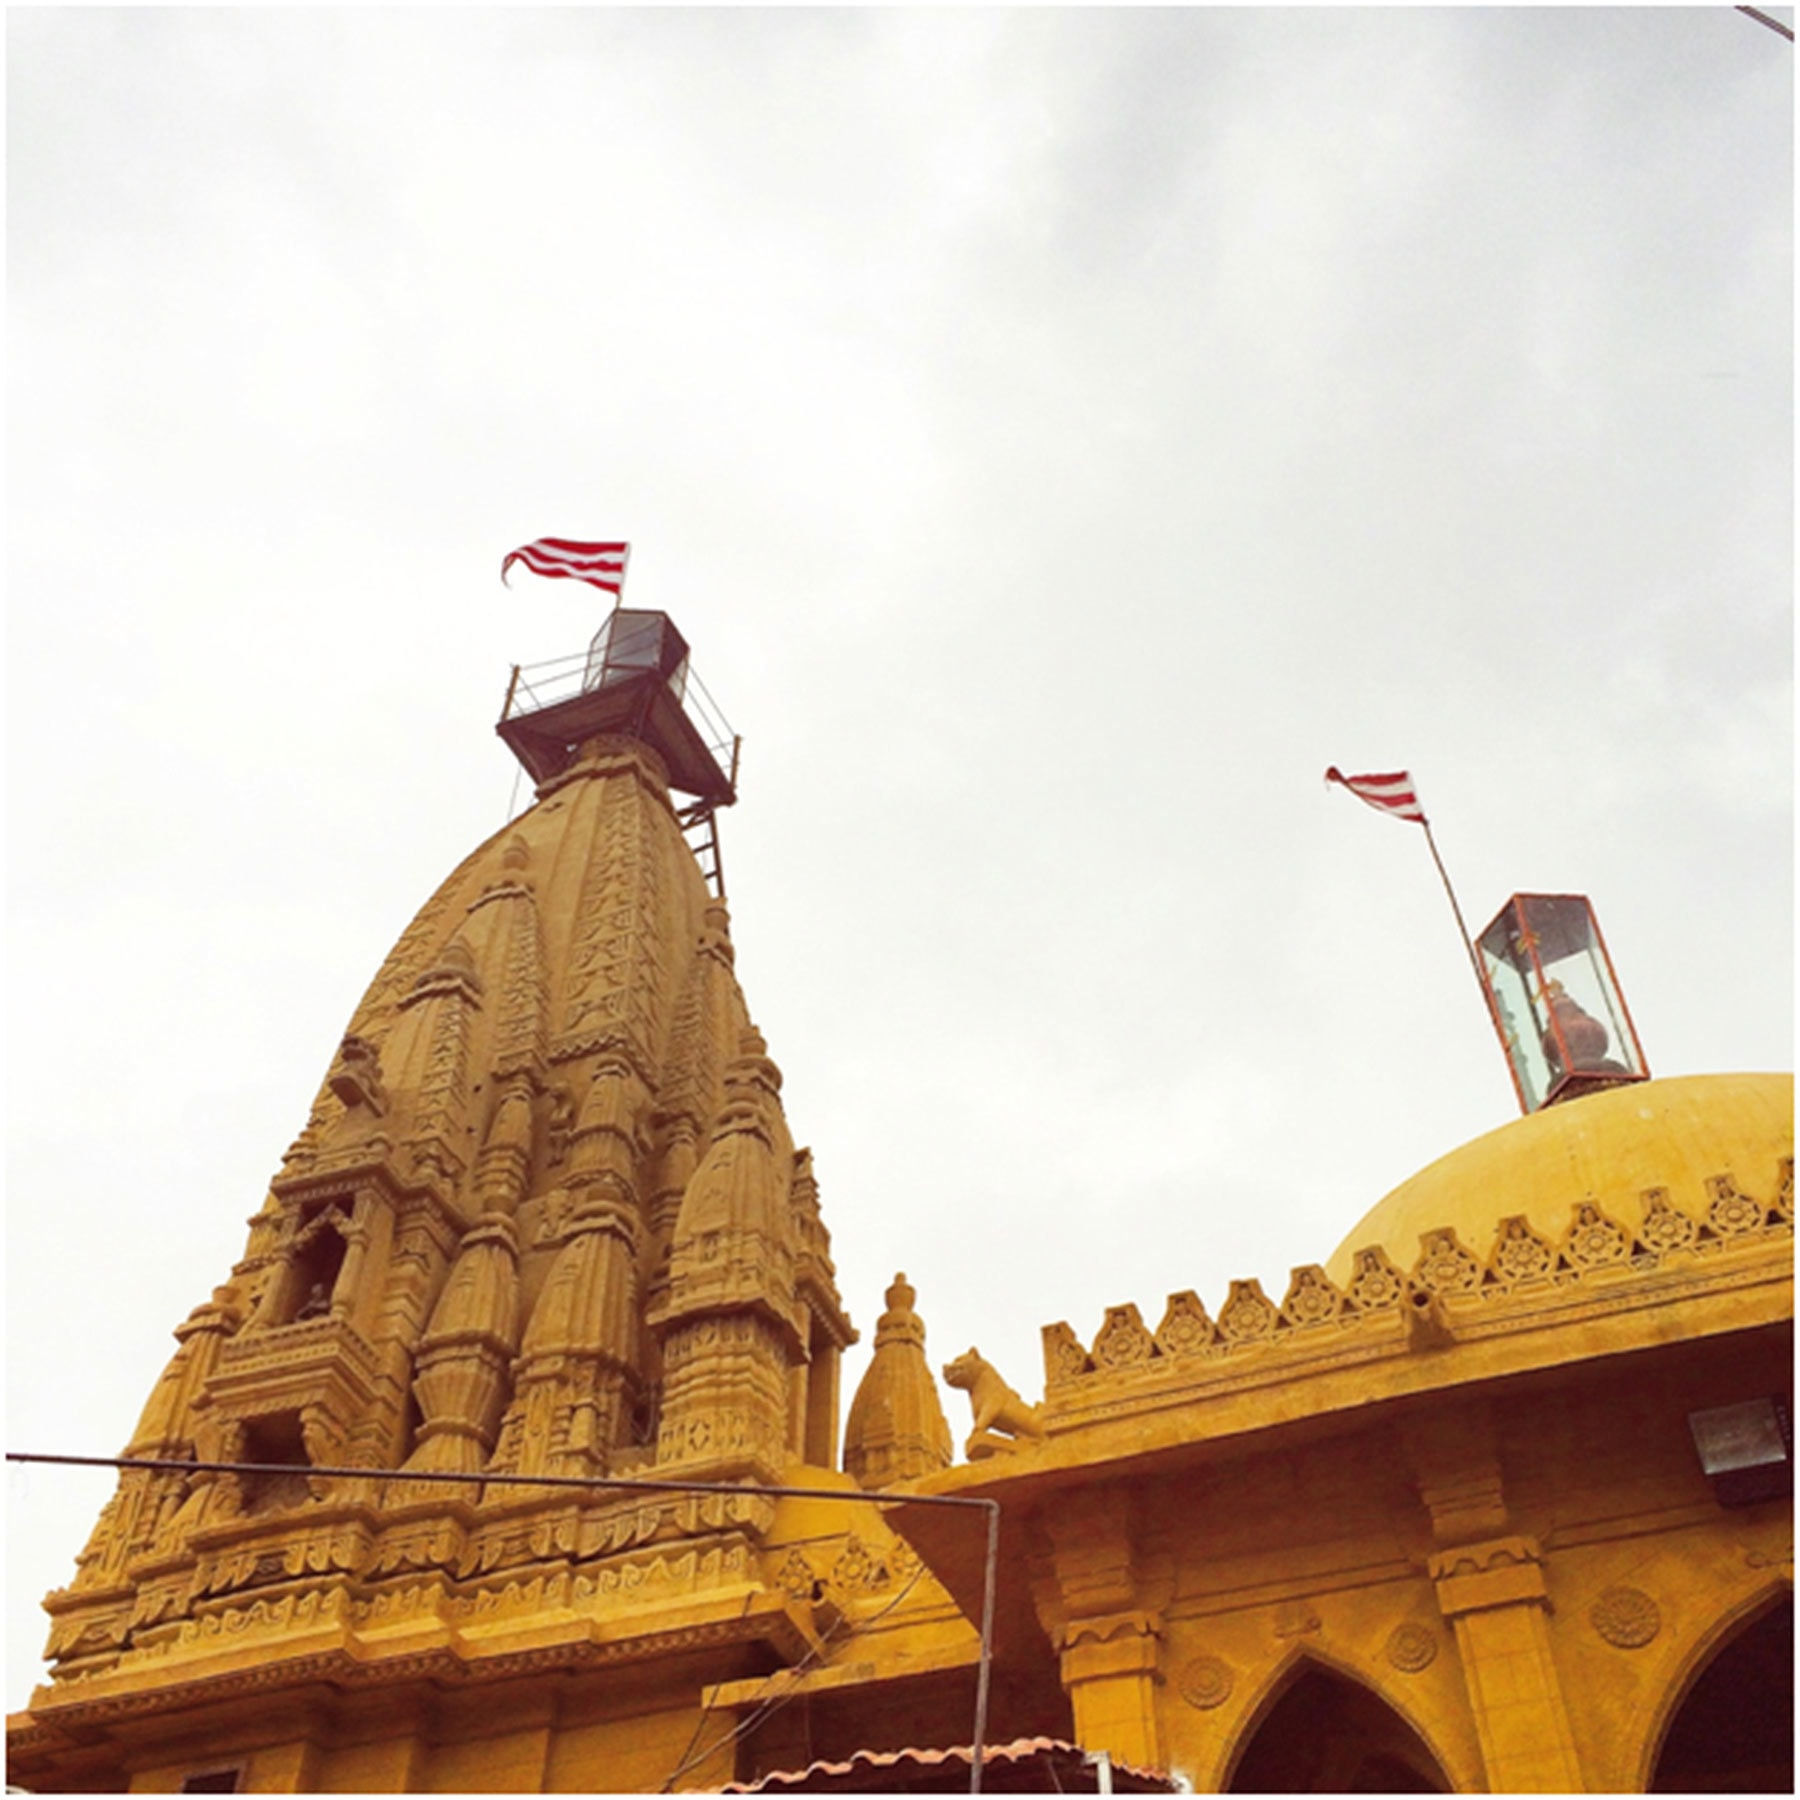 The Swaminarayan Hindu Temple also known as the Lighthouse Mandir.